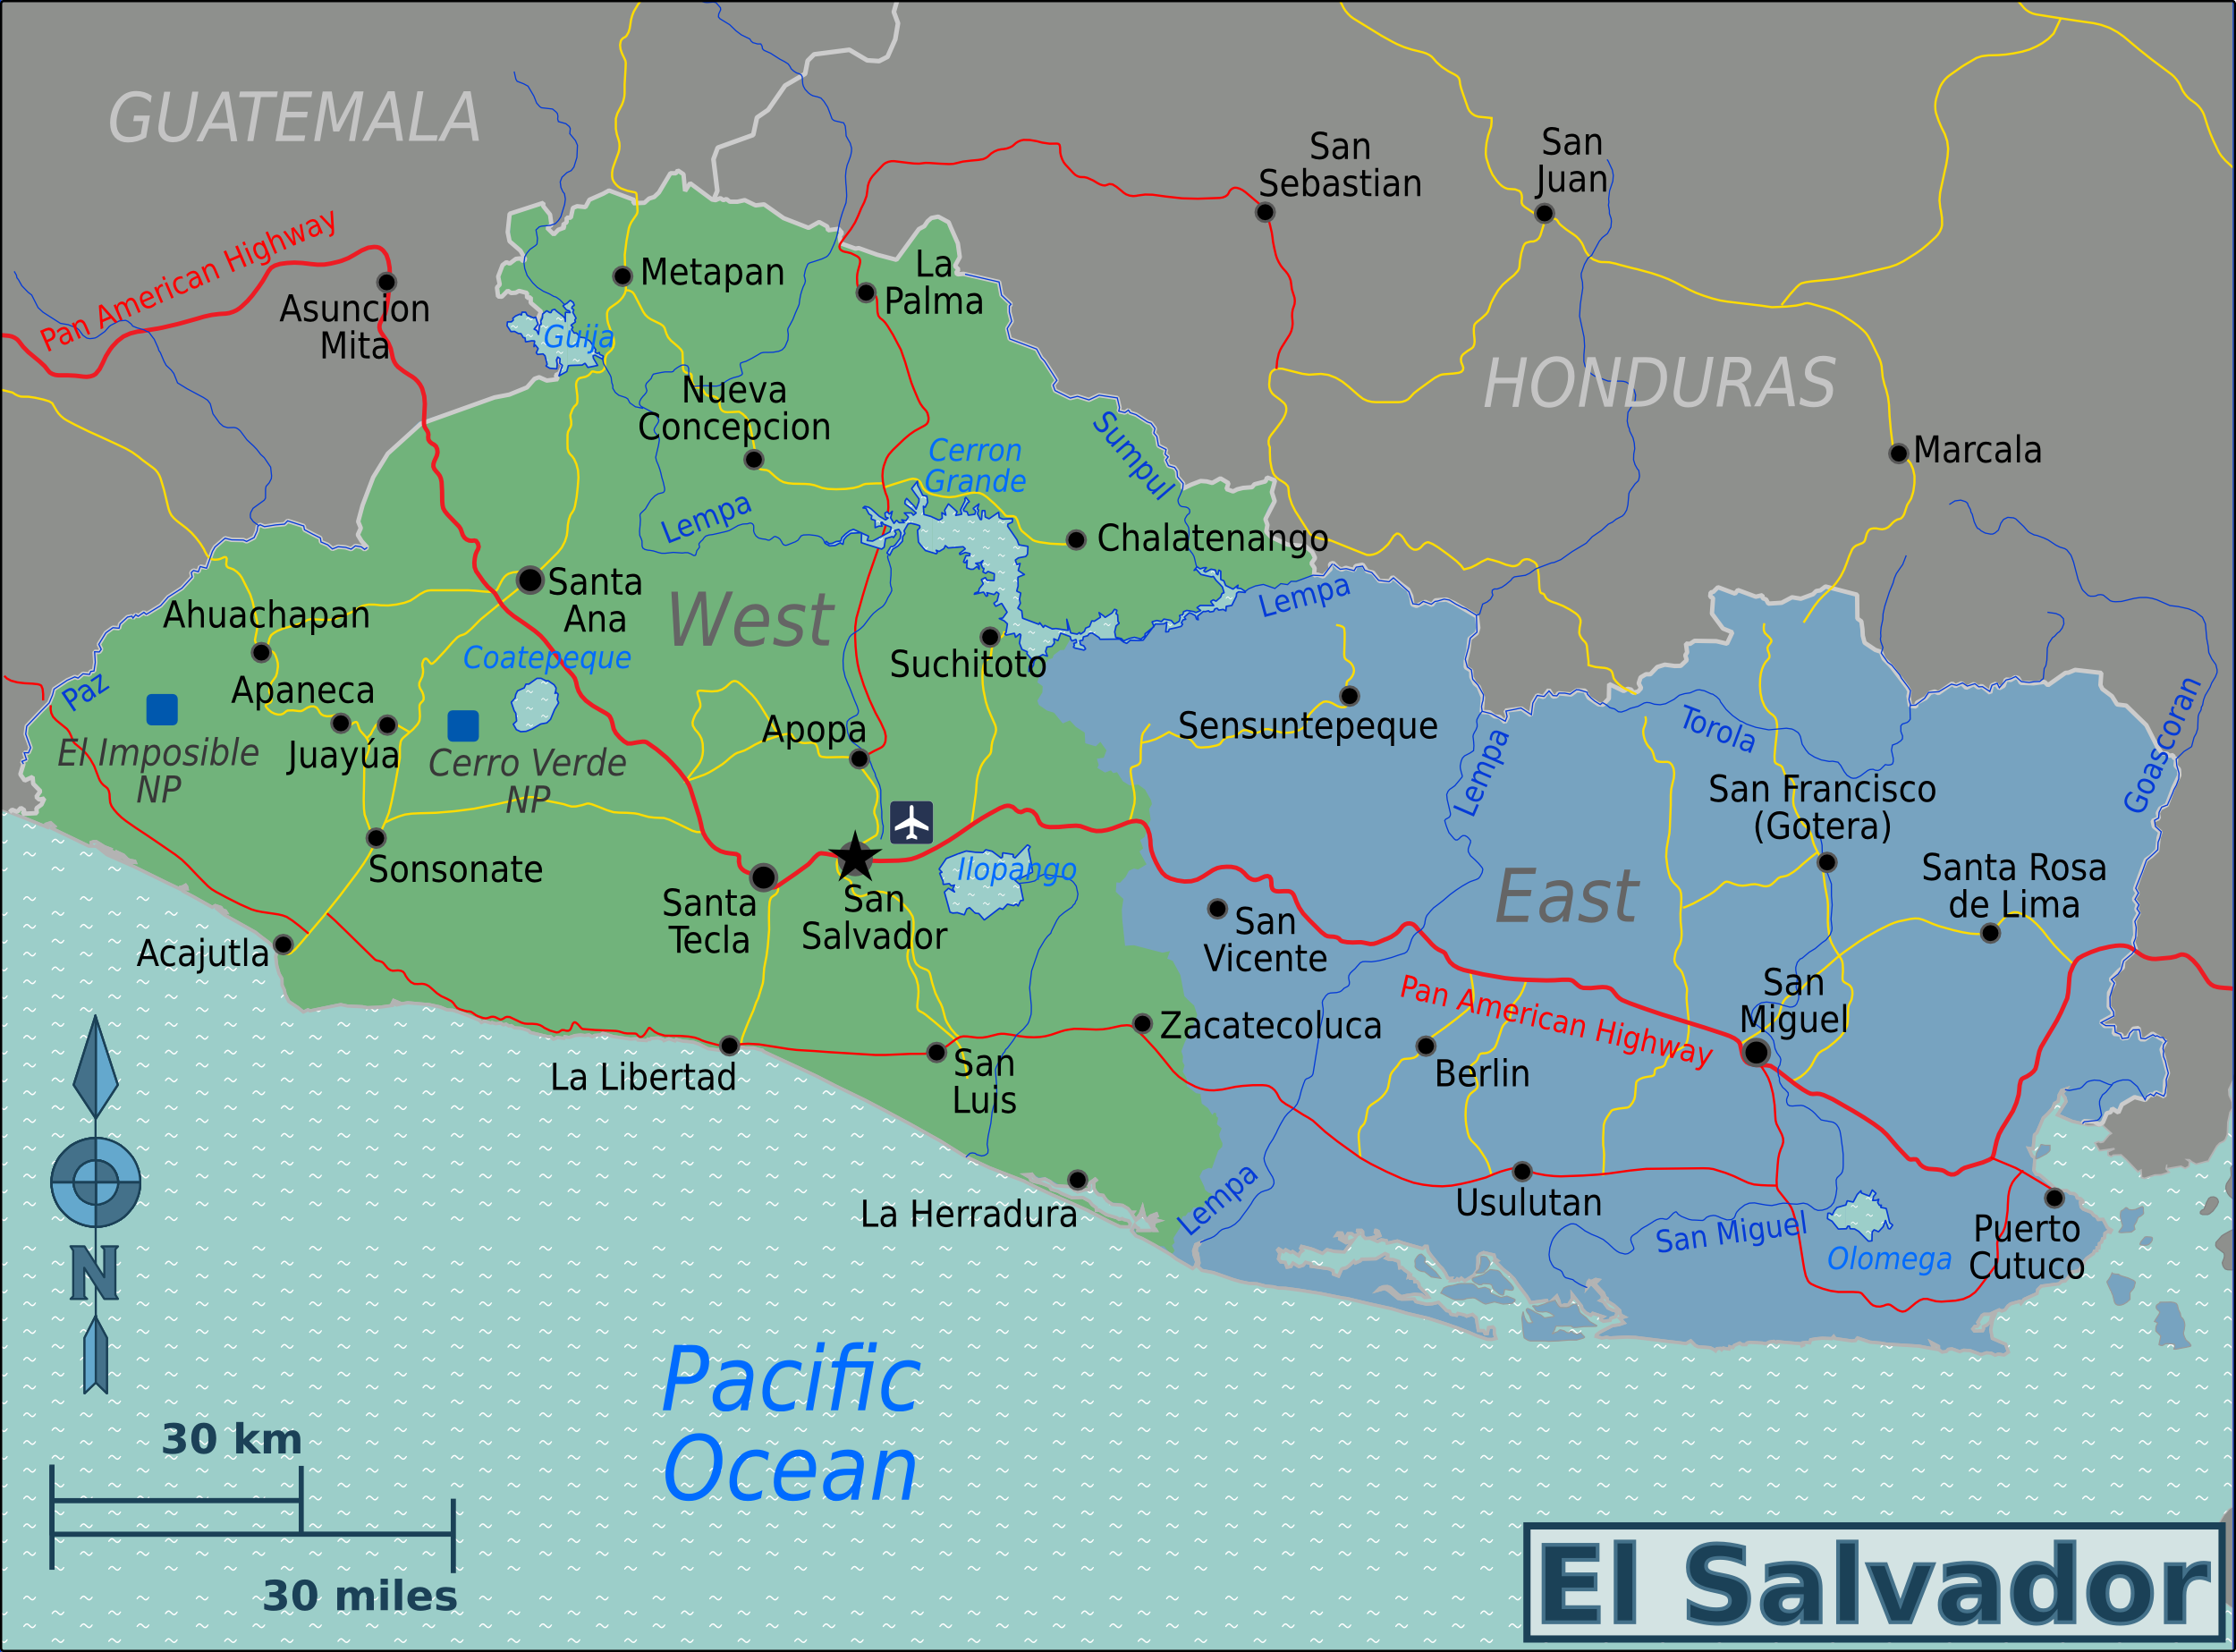 File:El Salvador Regions map.png - Wikimedia Commons on uruguay map, bage map, lima map, brazil map, nicaragua map, kusti map, the landing map, buenos aires map, costa rica map, taiohae map, sert map, mexico map, honduras map, peruana map, central america map, santiago map, passo fundo map, caracas map, south america map, world map,